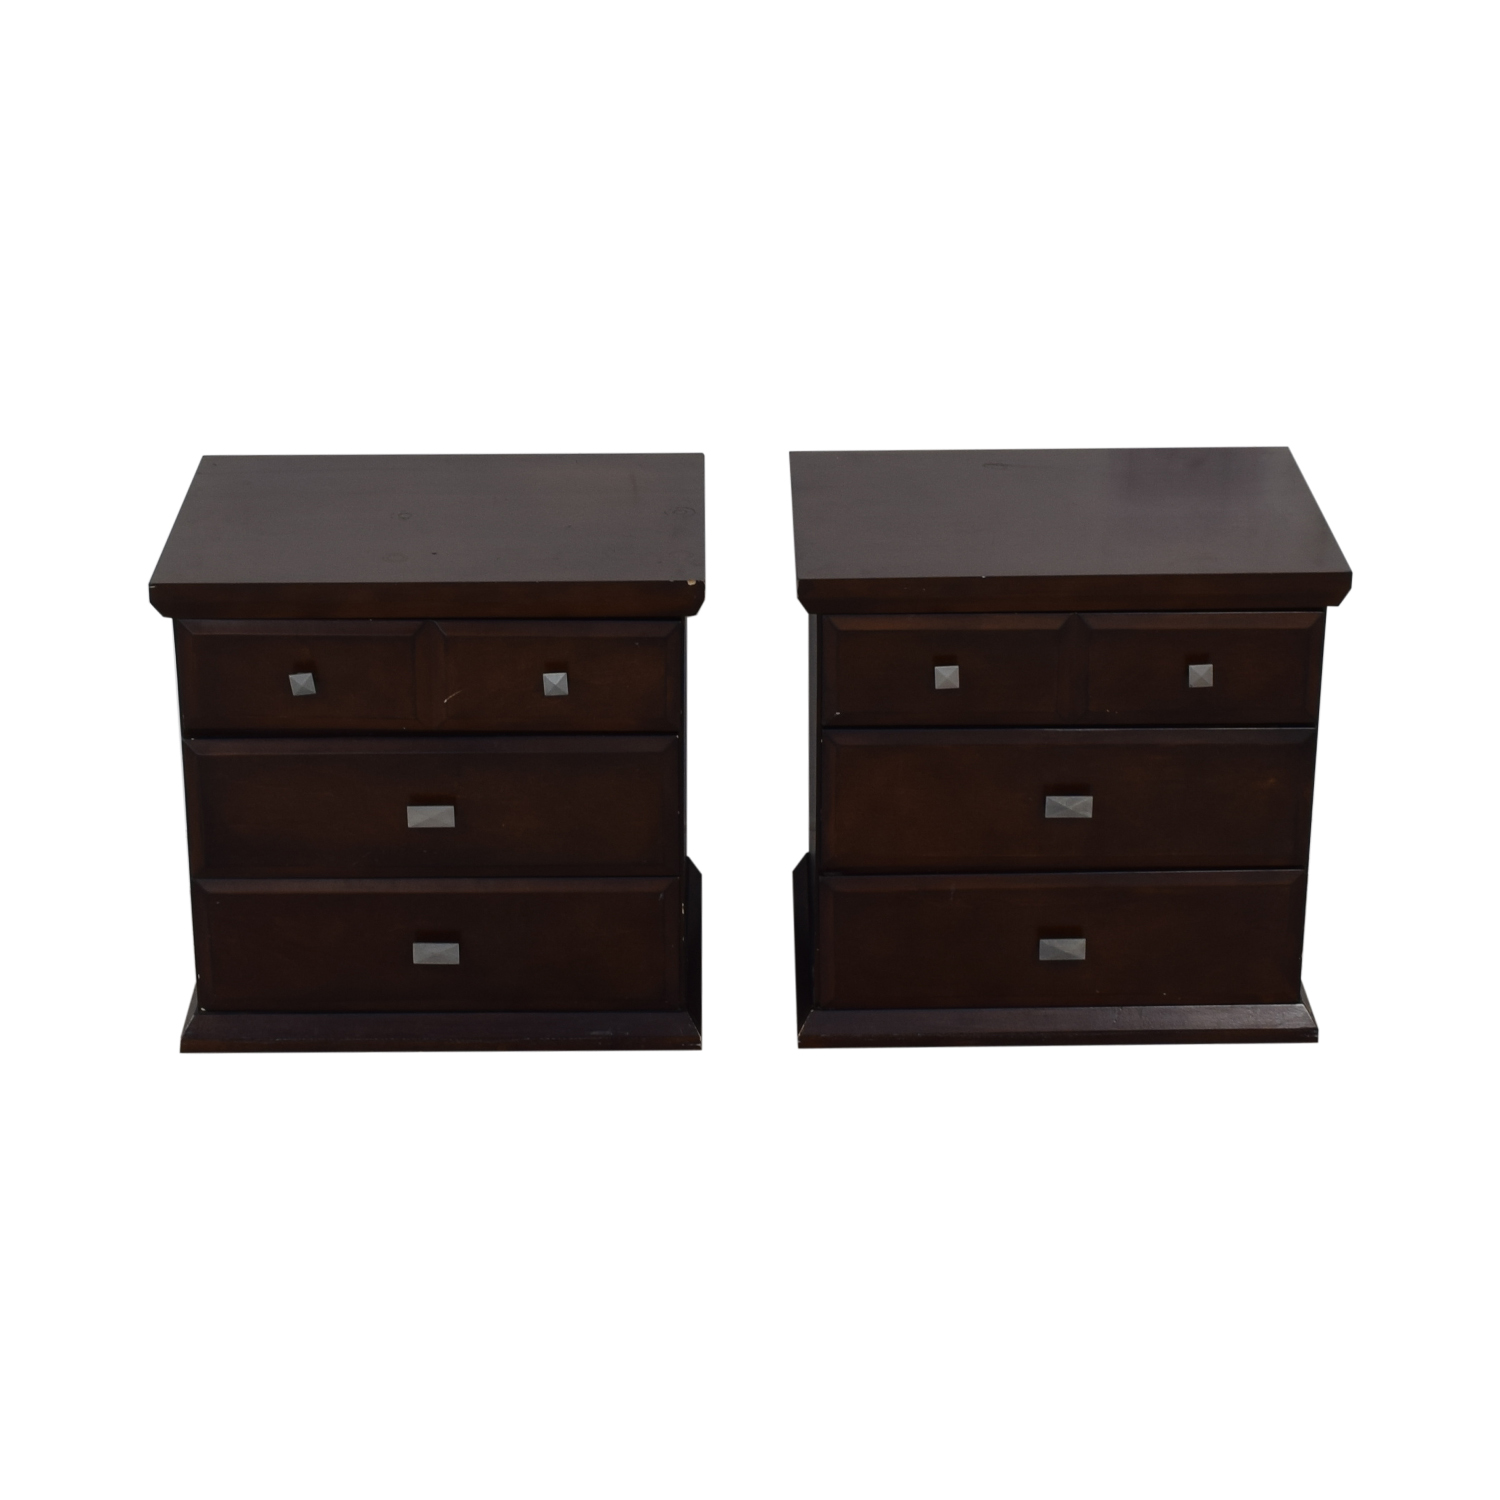 Three Drawer Wood Nightstands End Tables